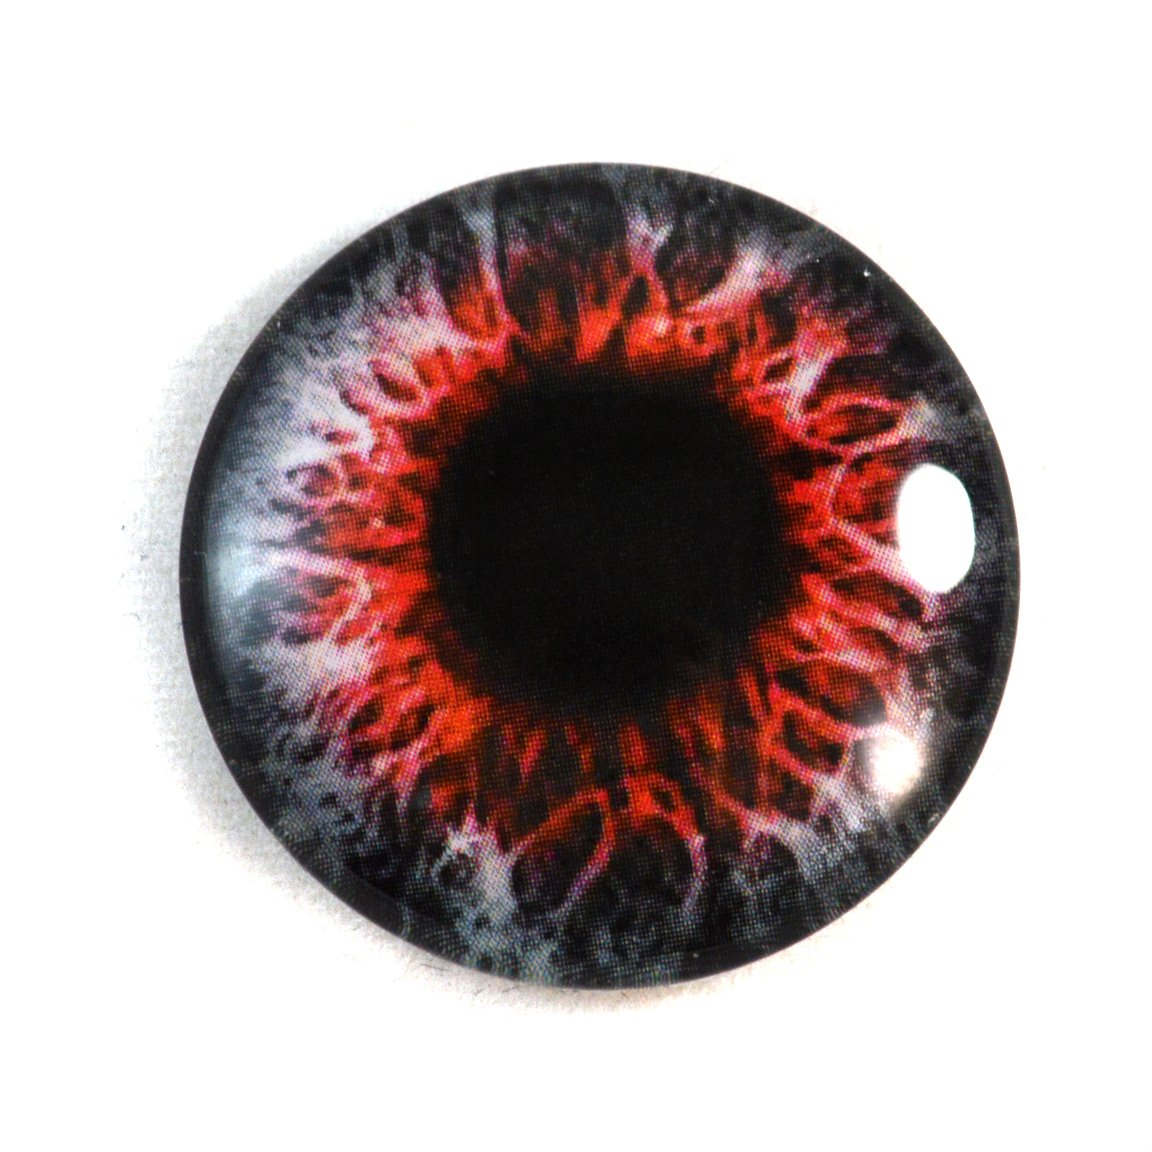 30mm Red Demon Glass Eye for Taxidermy Sculptures or Jewelry Making Pendant Crafts